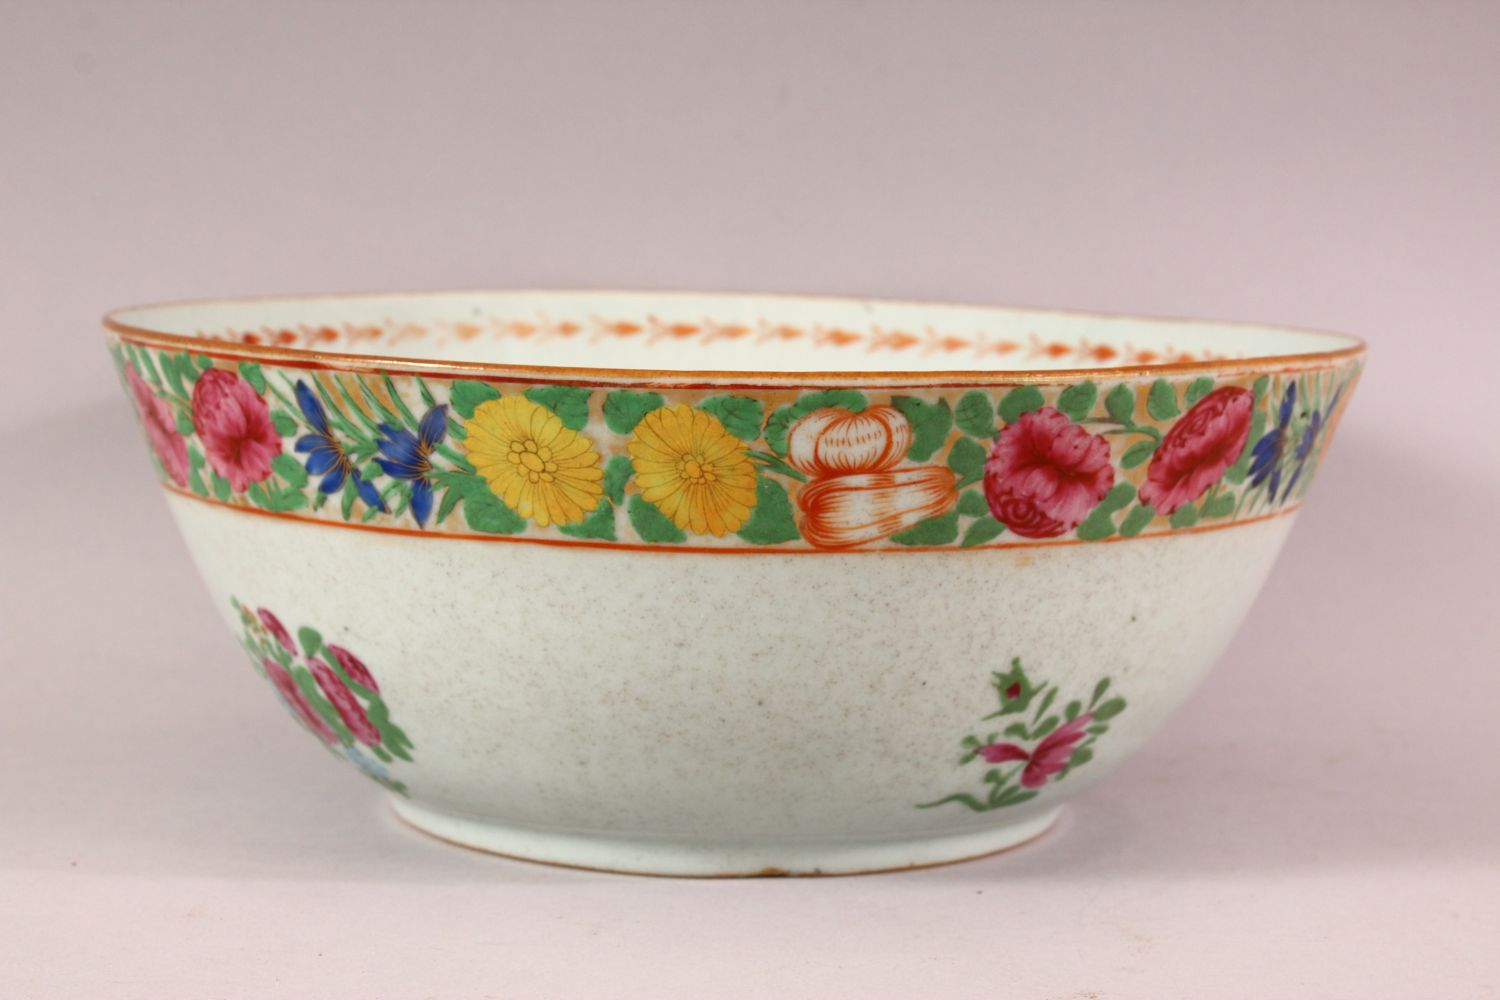 TWO 18TH / 19TH CENTURY CHINESE FAMILLE ROSE PORCELAIN BOWLS, each decorated with bands of flora, ( - Image 4 of 5